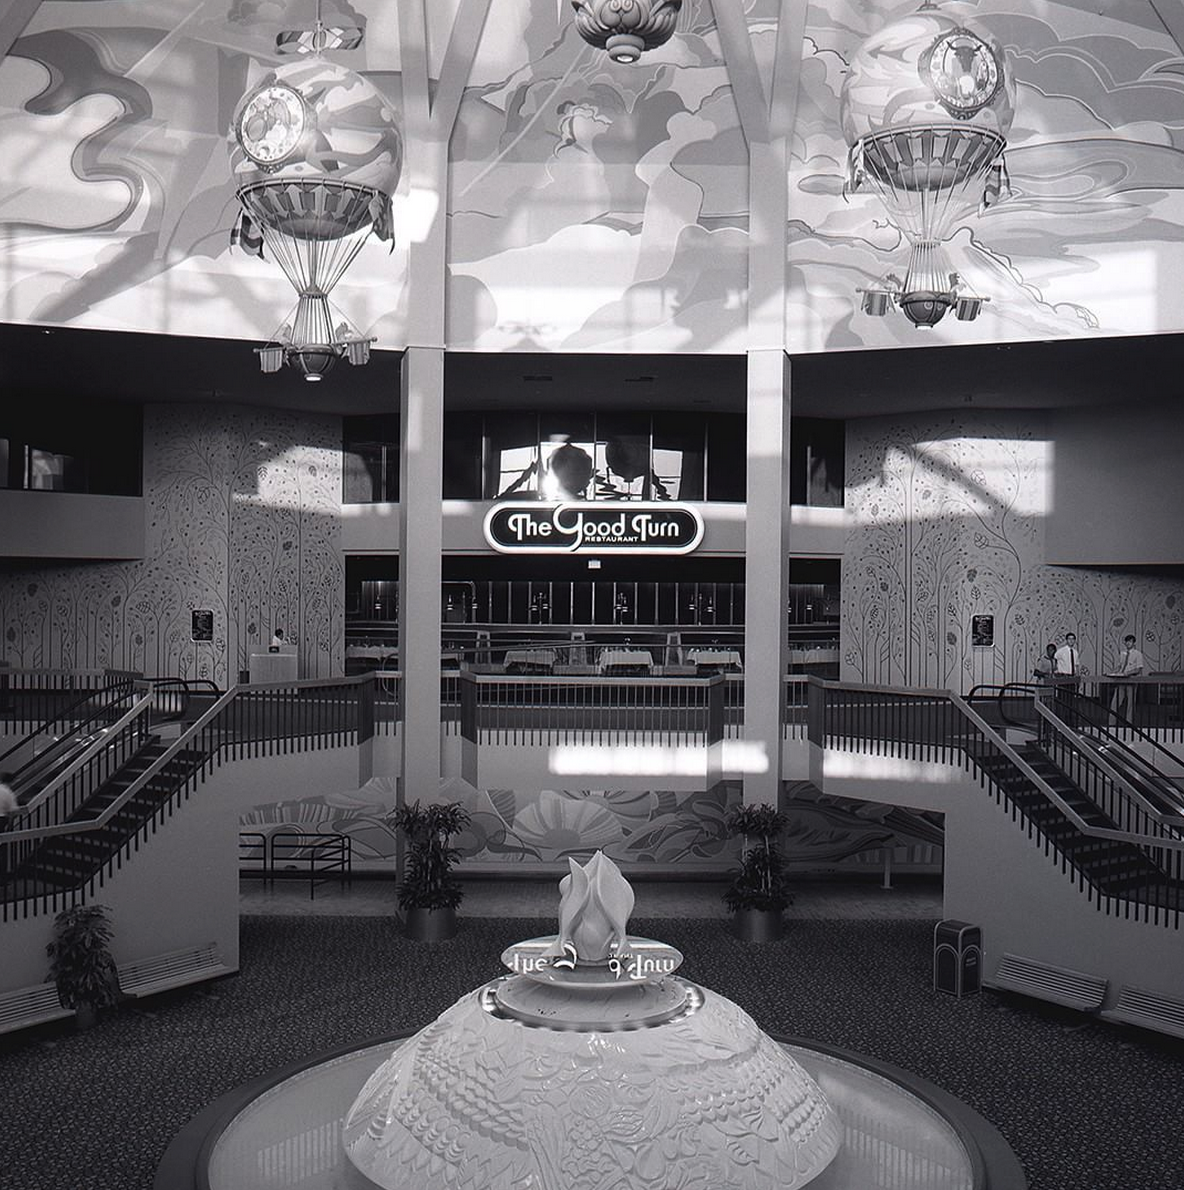 The lounge's windows are visible above The Good Turn Restaurant in this 1982 picture of The Land. Photo: www.epcotlegacy.com